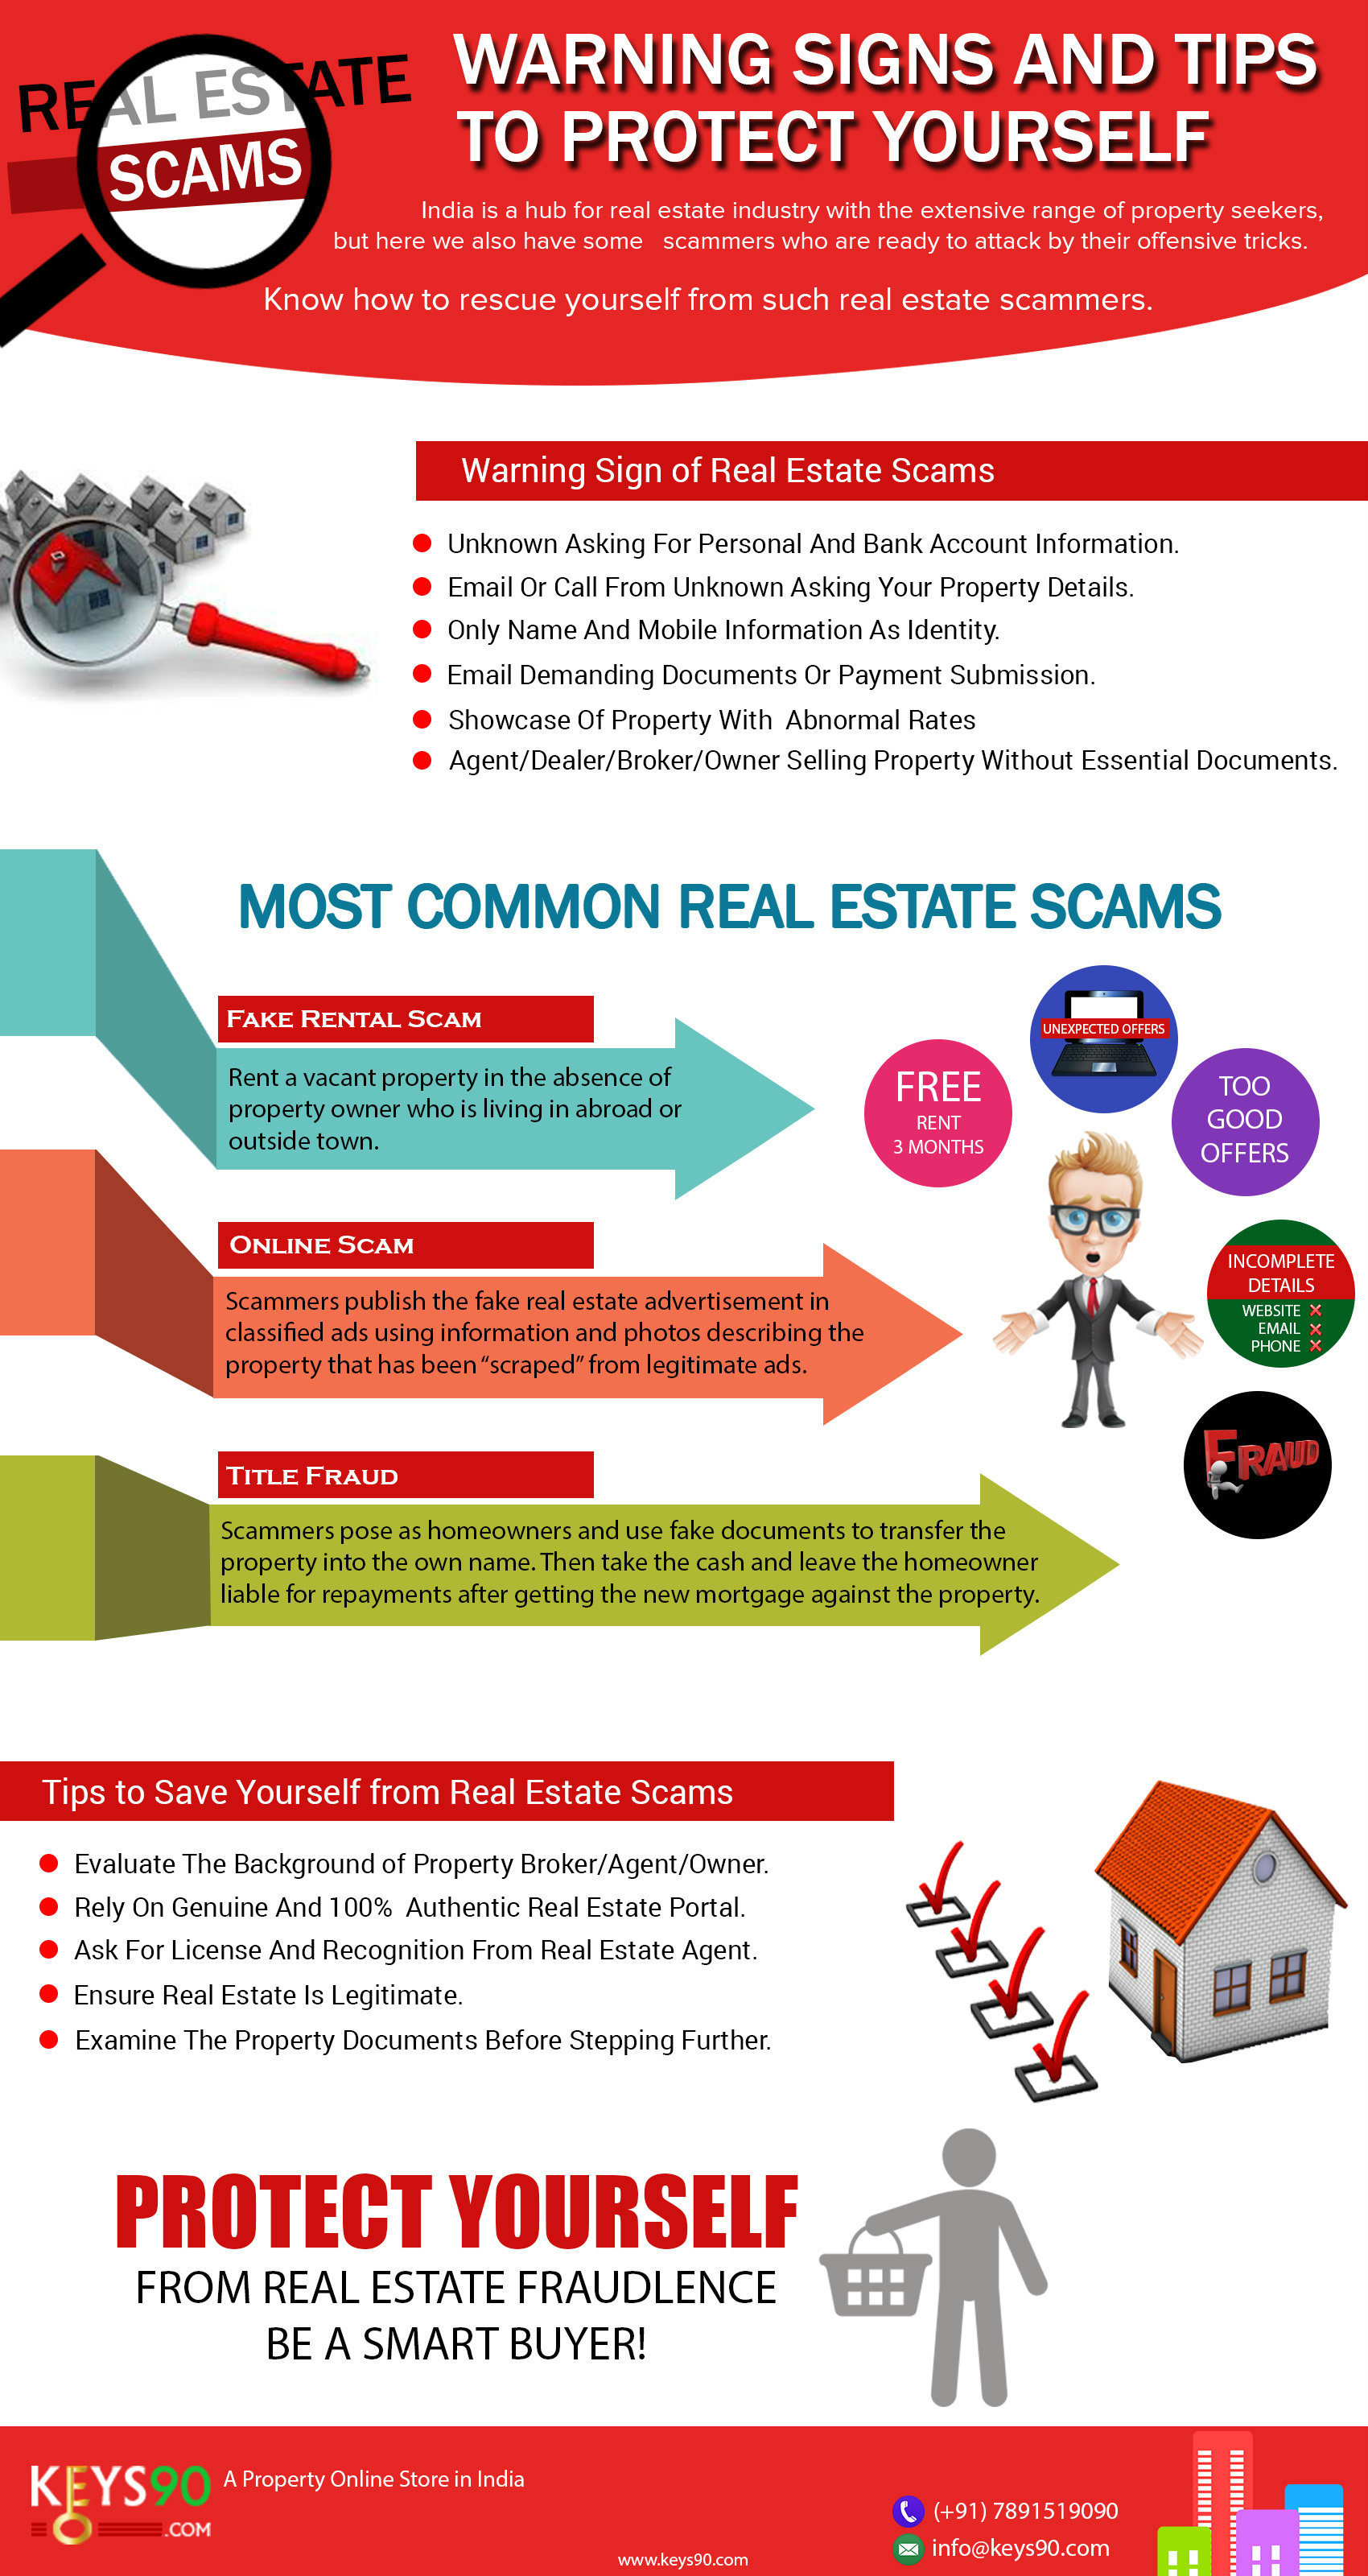 Real Estate Scams – Warning Signs and Tips [Infographic]